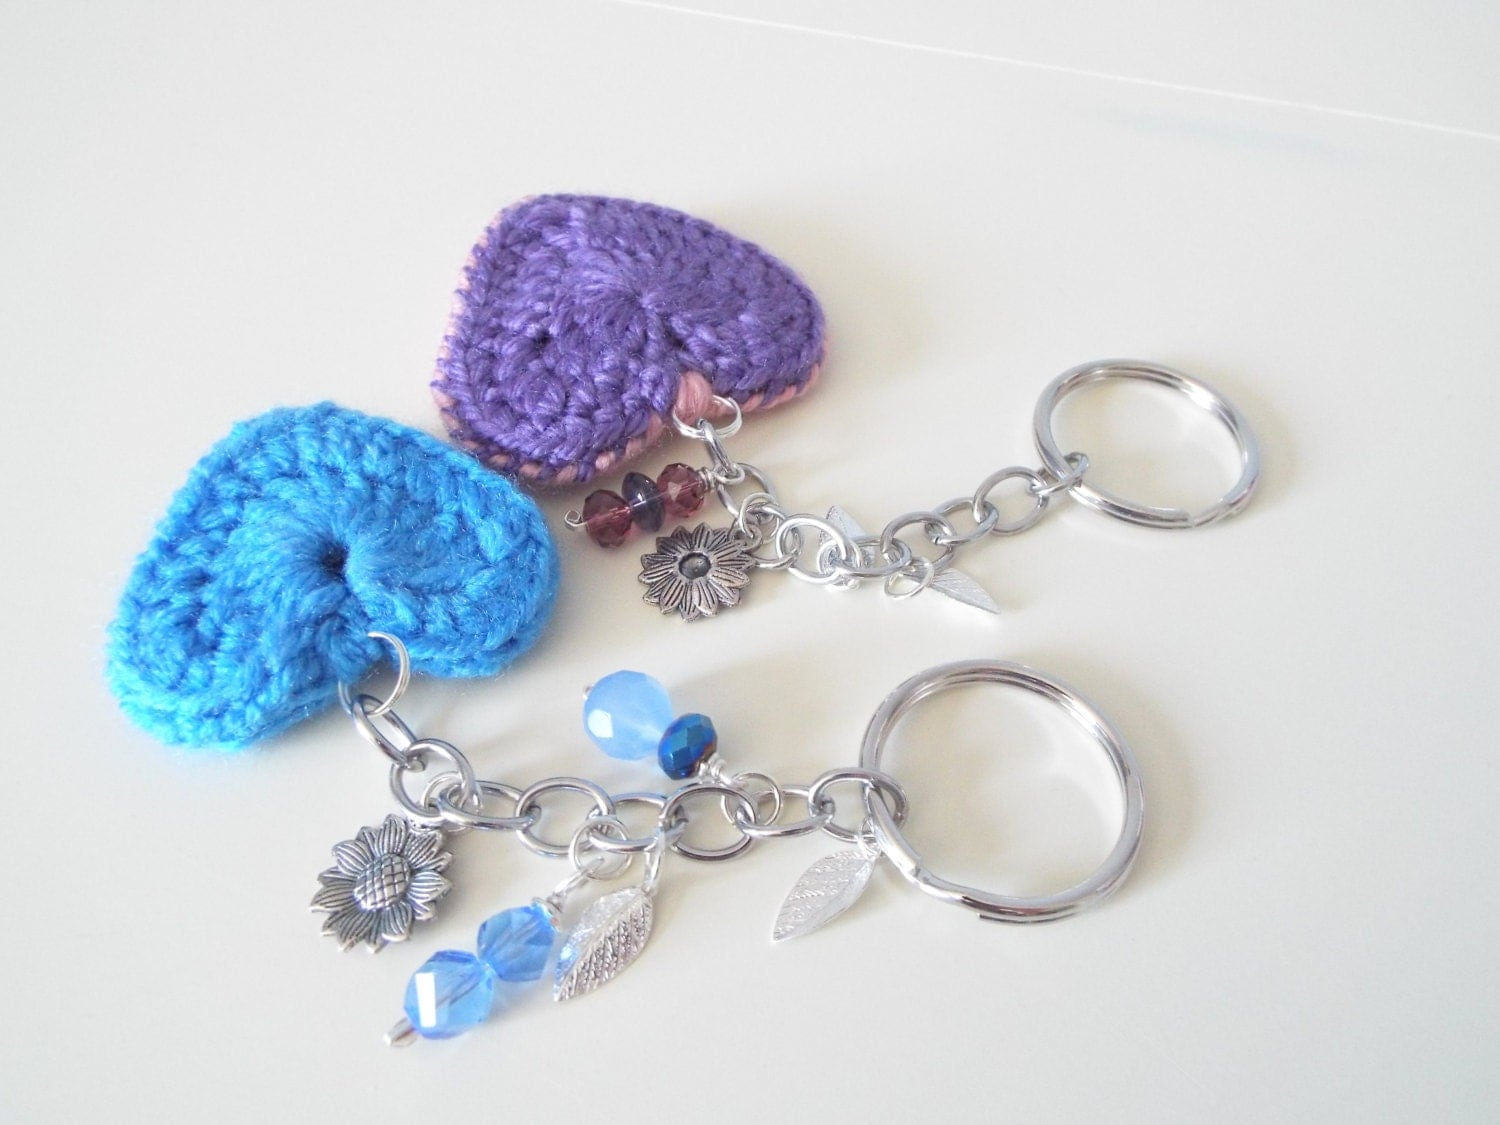 Crochet Keychain : Crochet heart keychain Keyring Small by CrochetToysCorner on Etsy